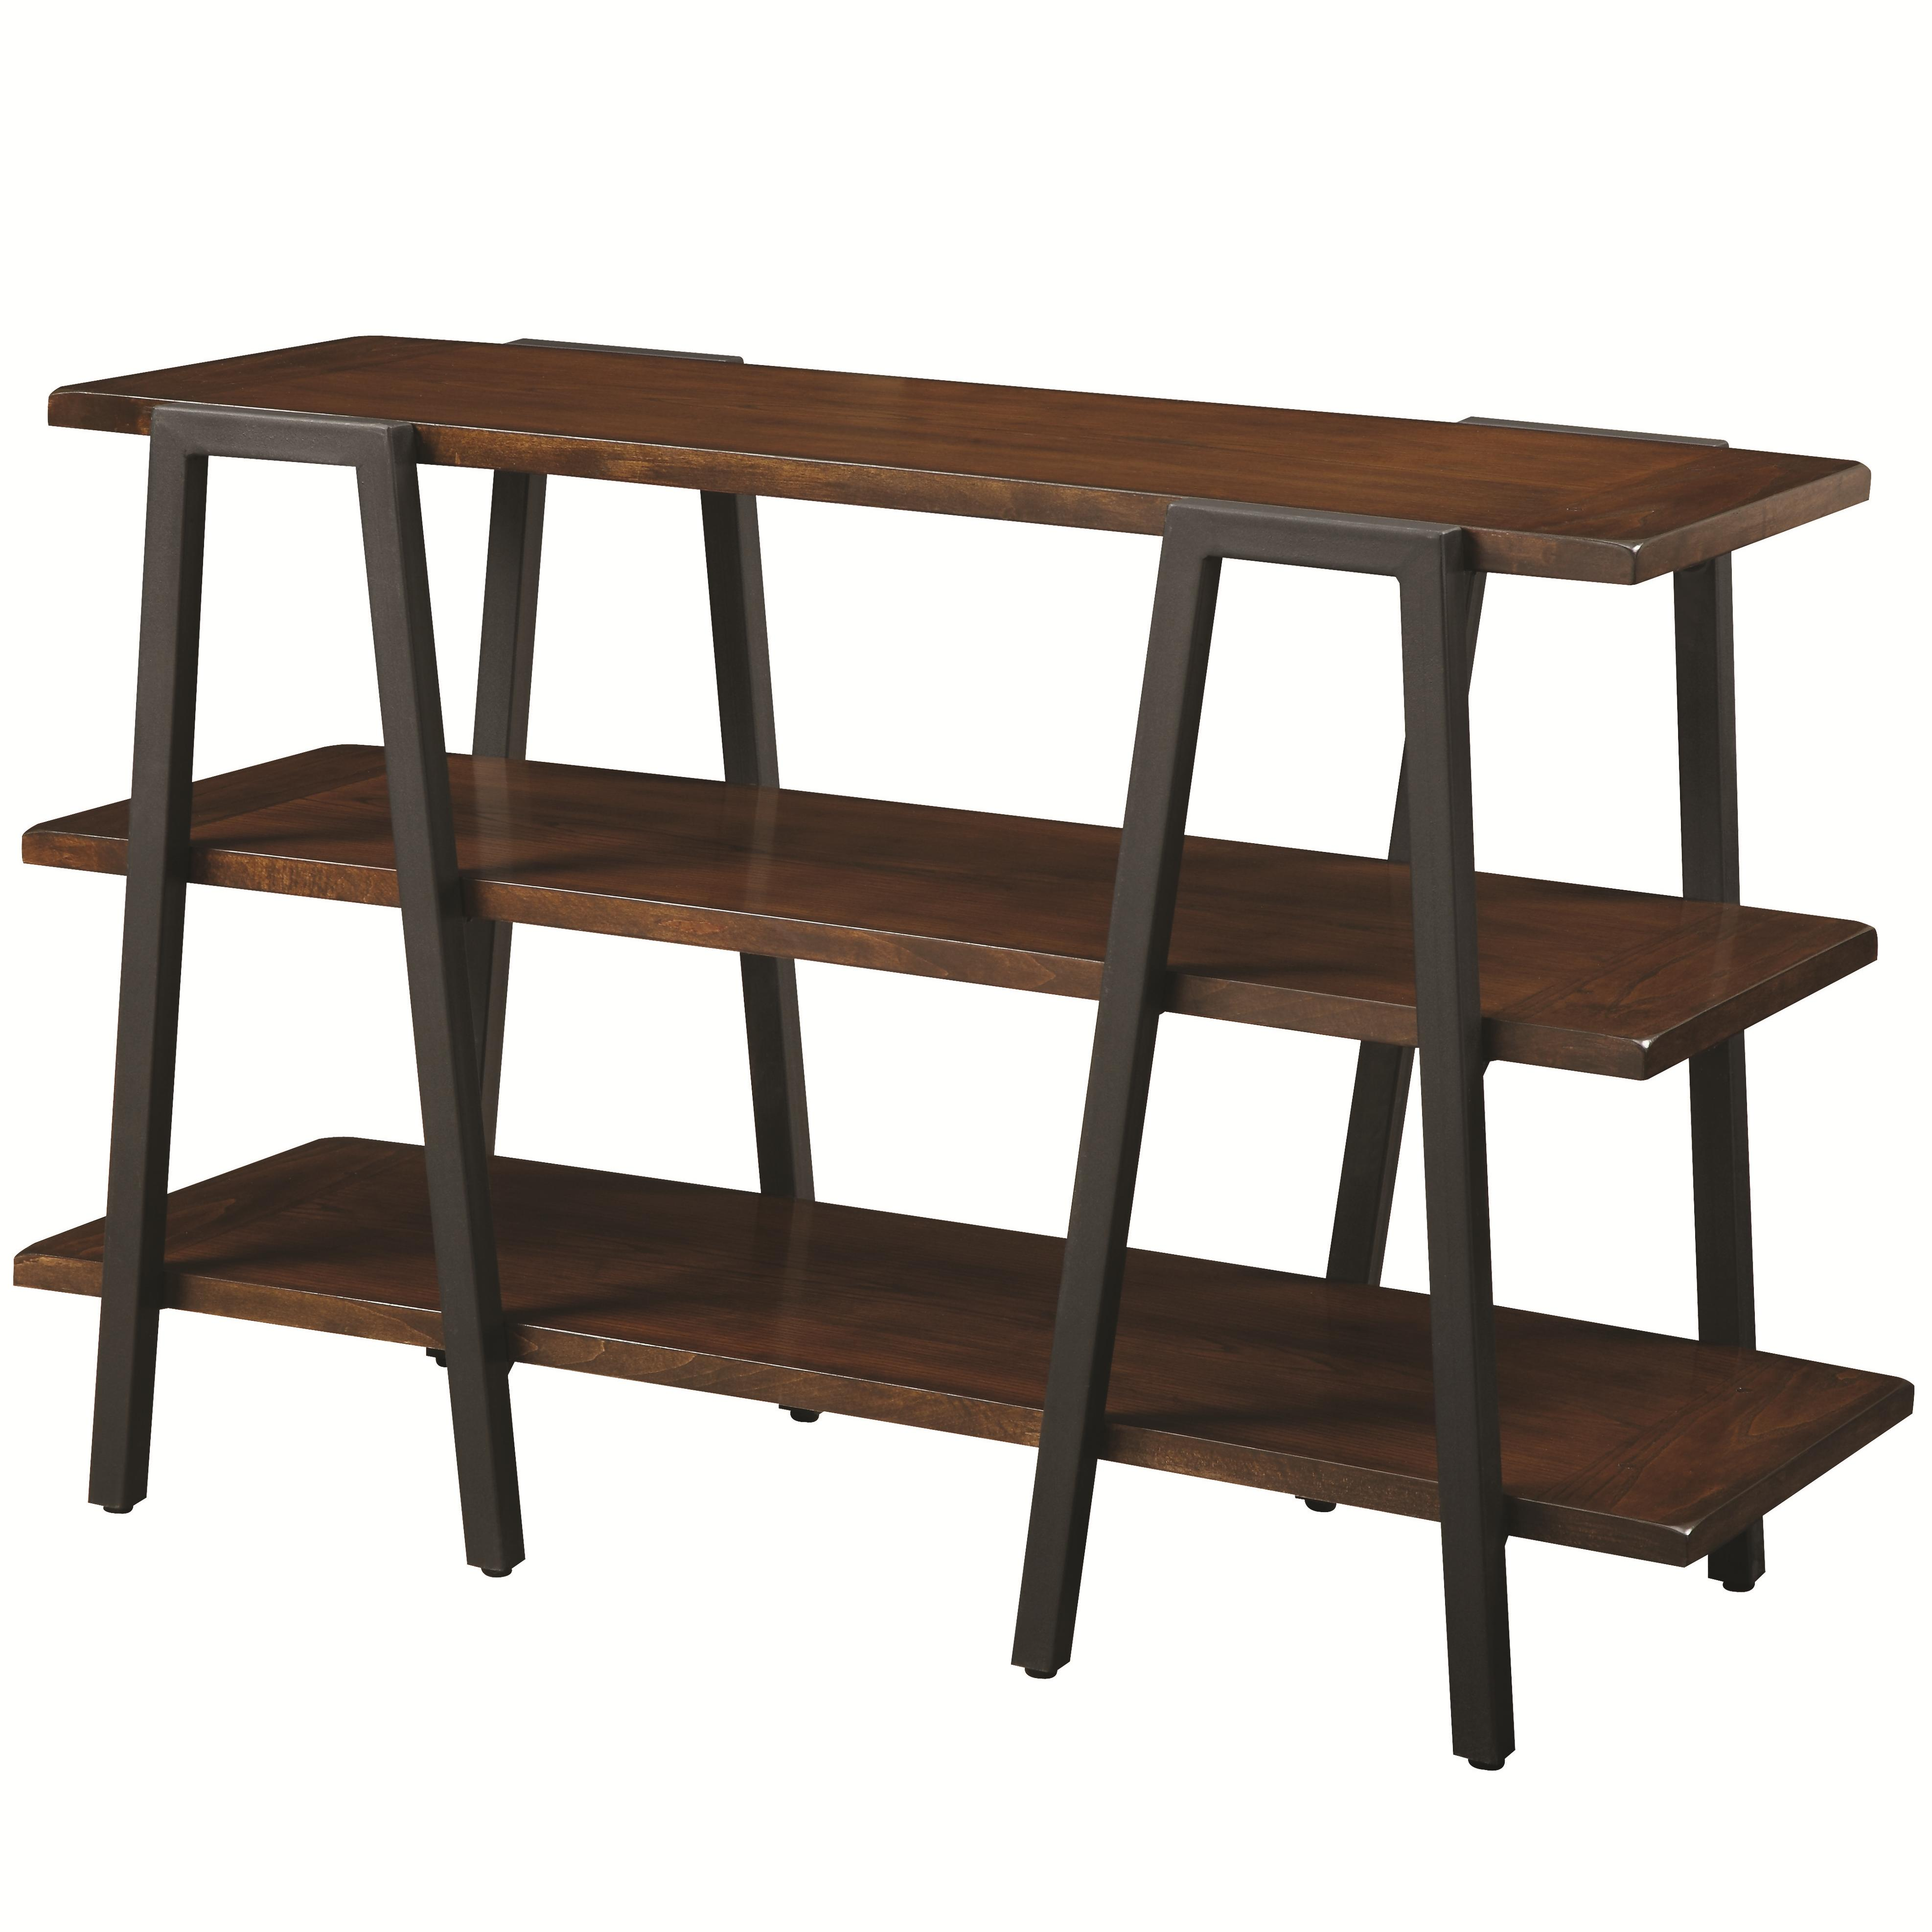 70328 Sofa Table With 2 Shelves Quality Furniture At